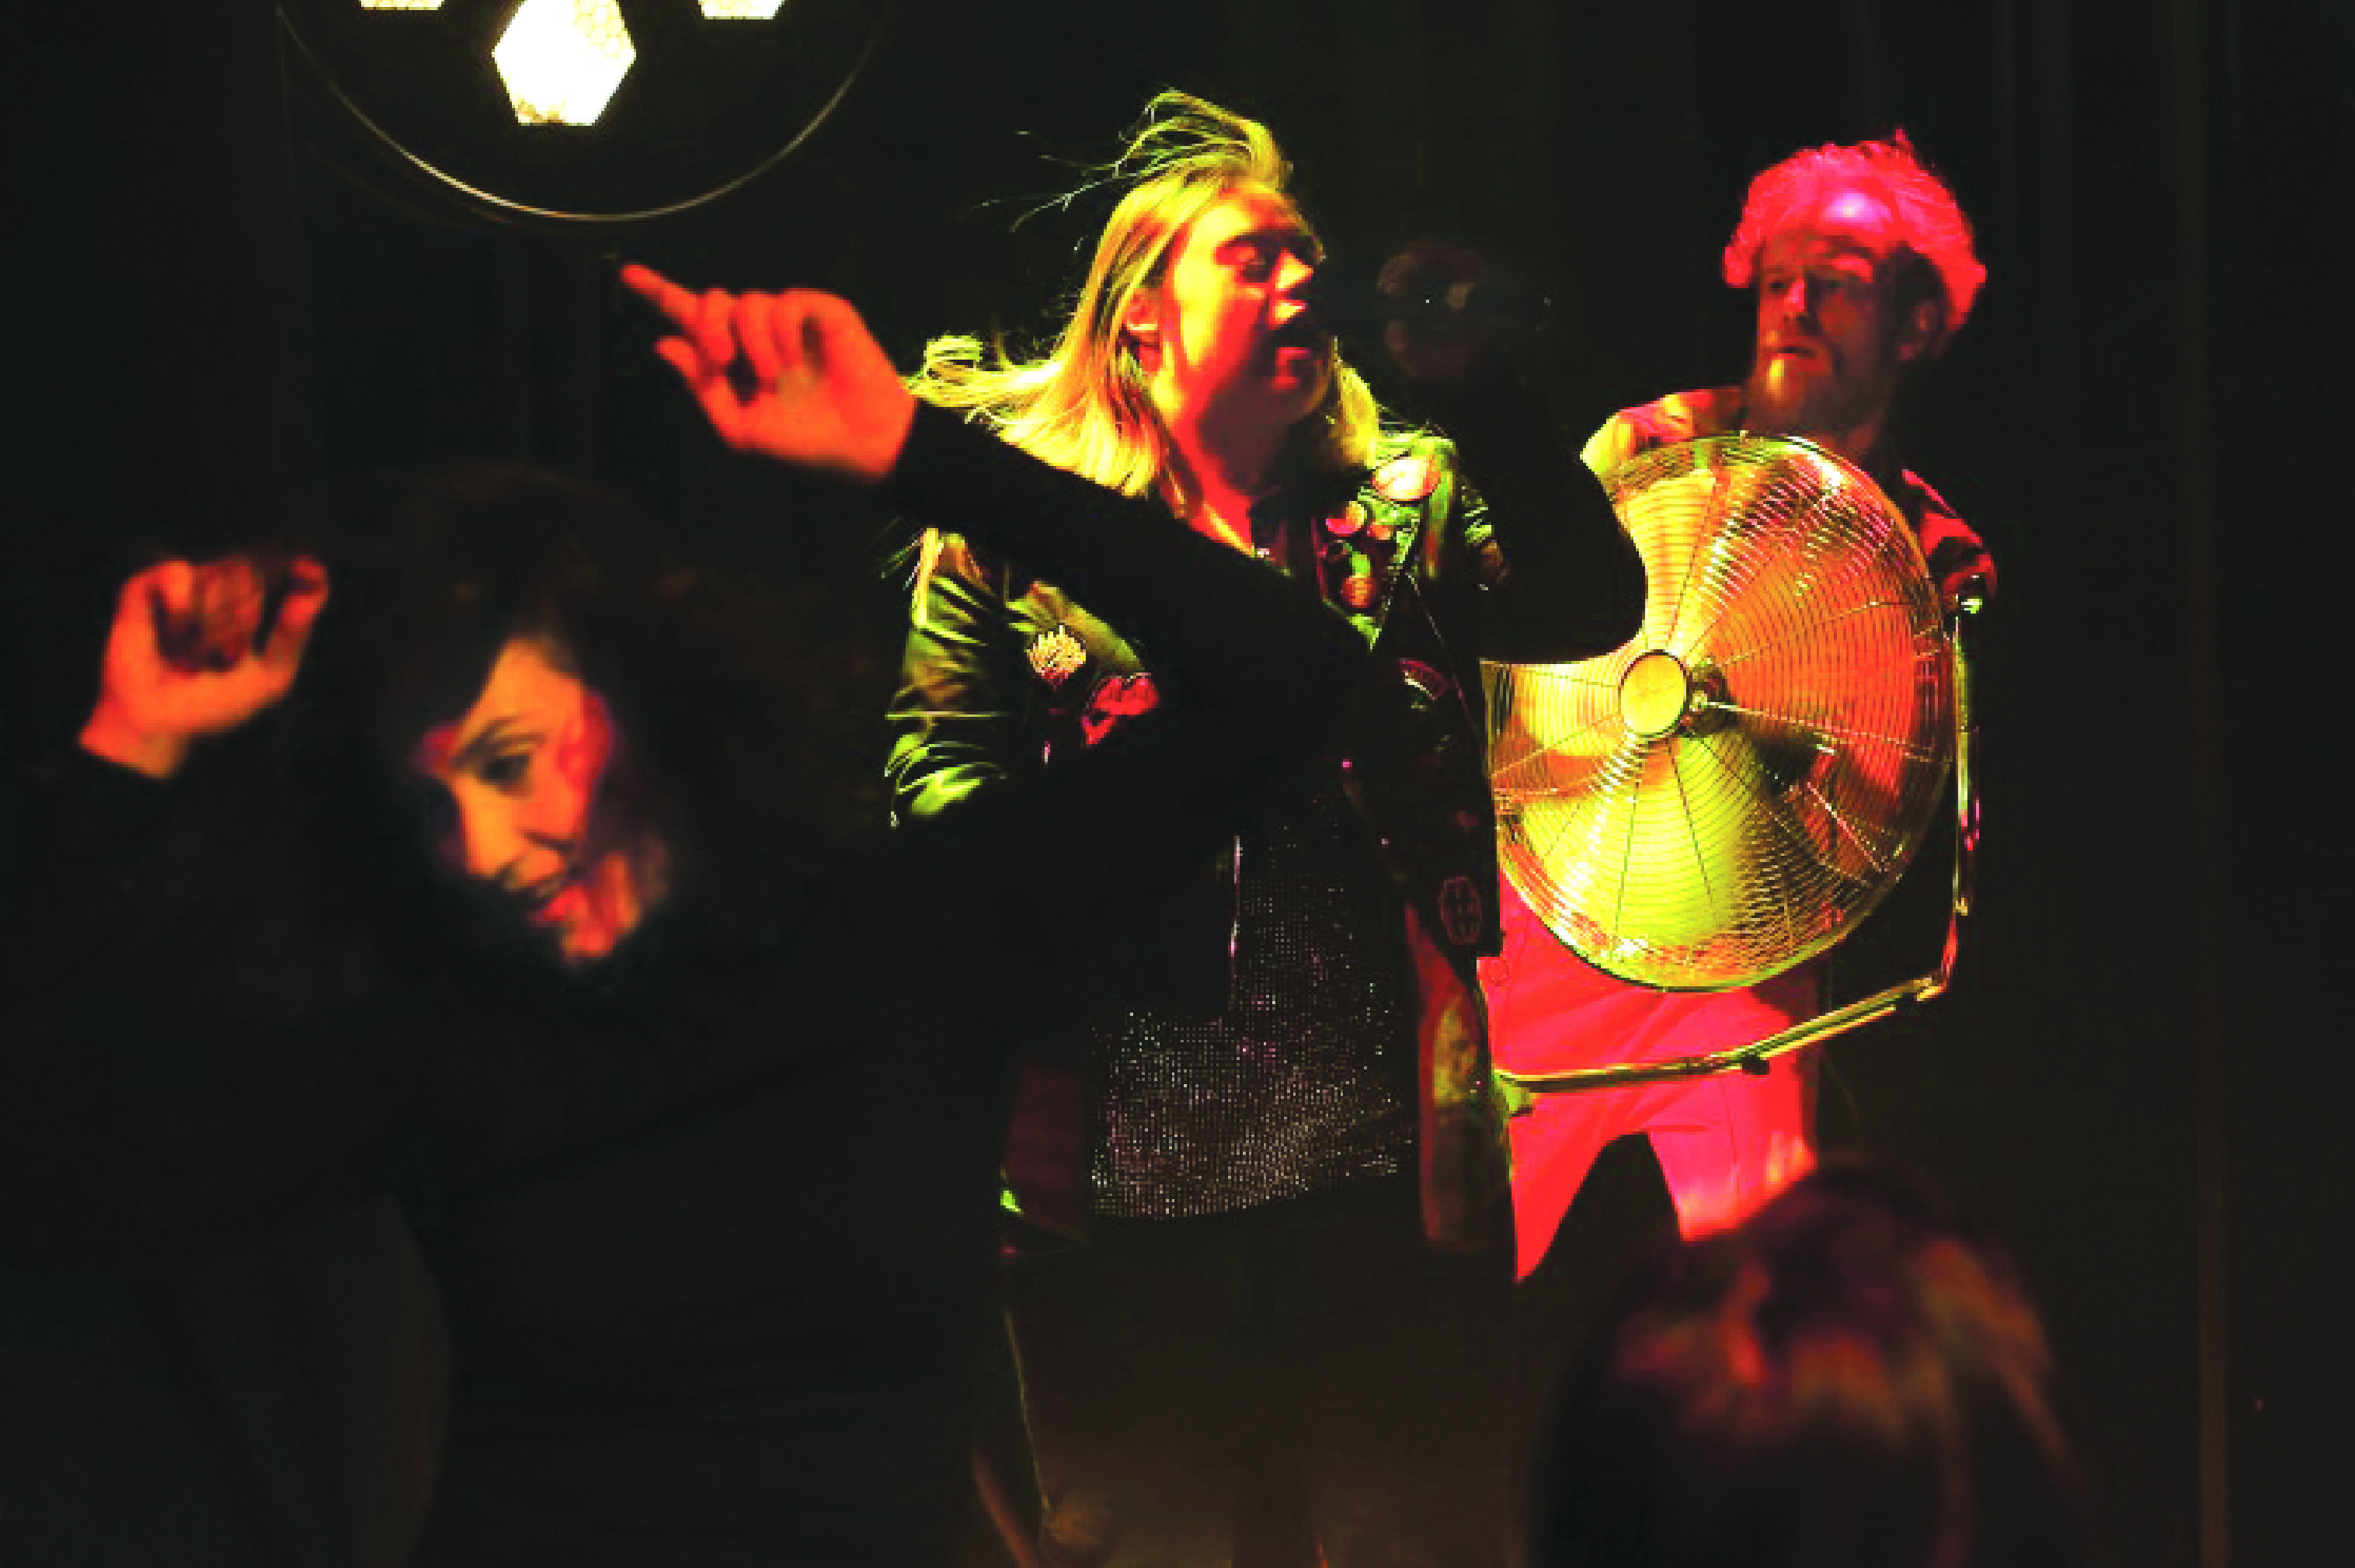 Female singing with people dancing around her in a dark room